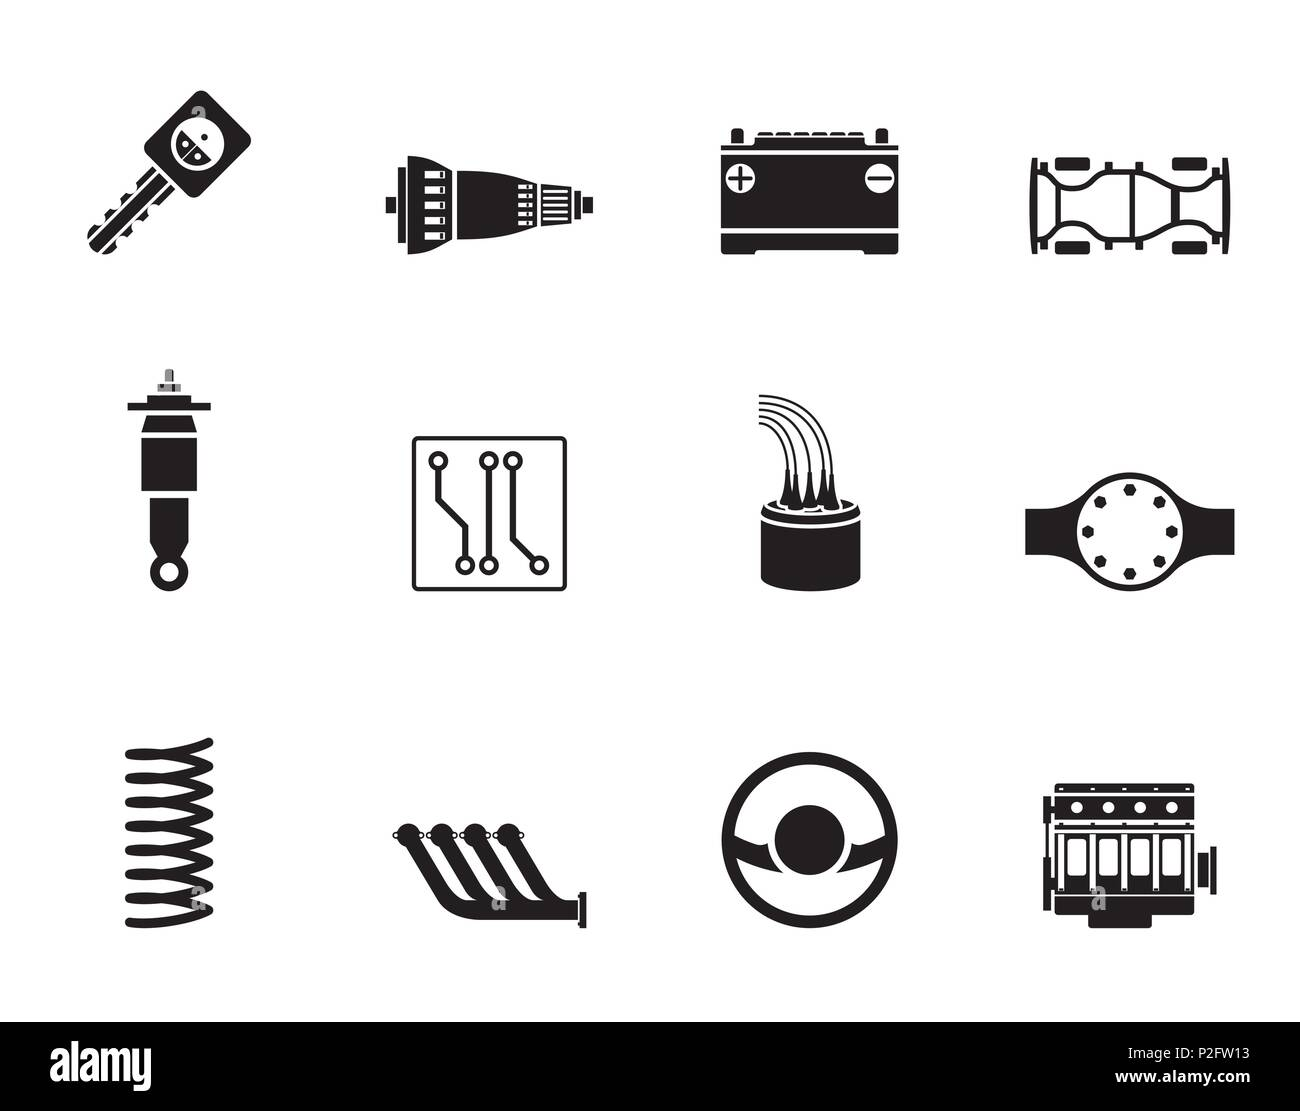 Silhouette Realistic Car Parts And Services Icons Vector Icon Set